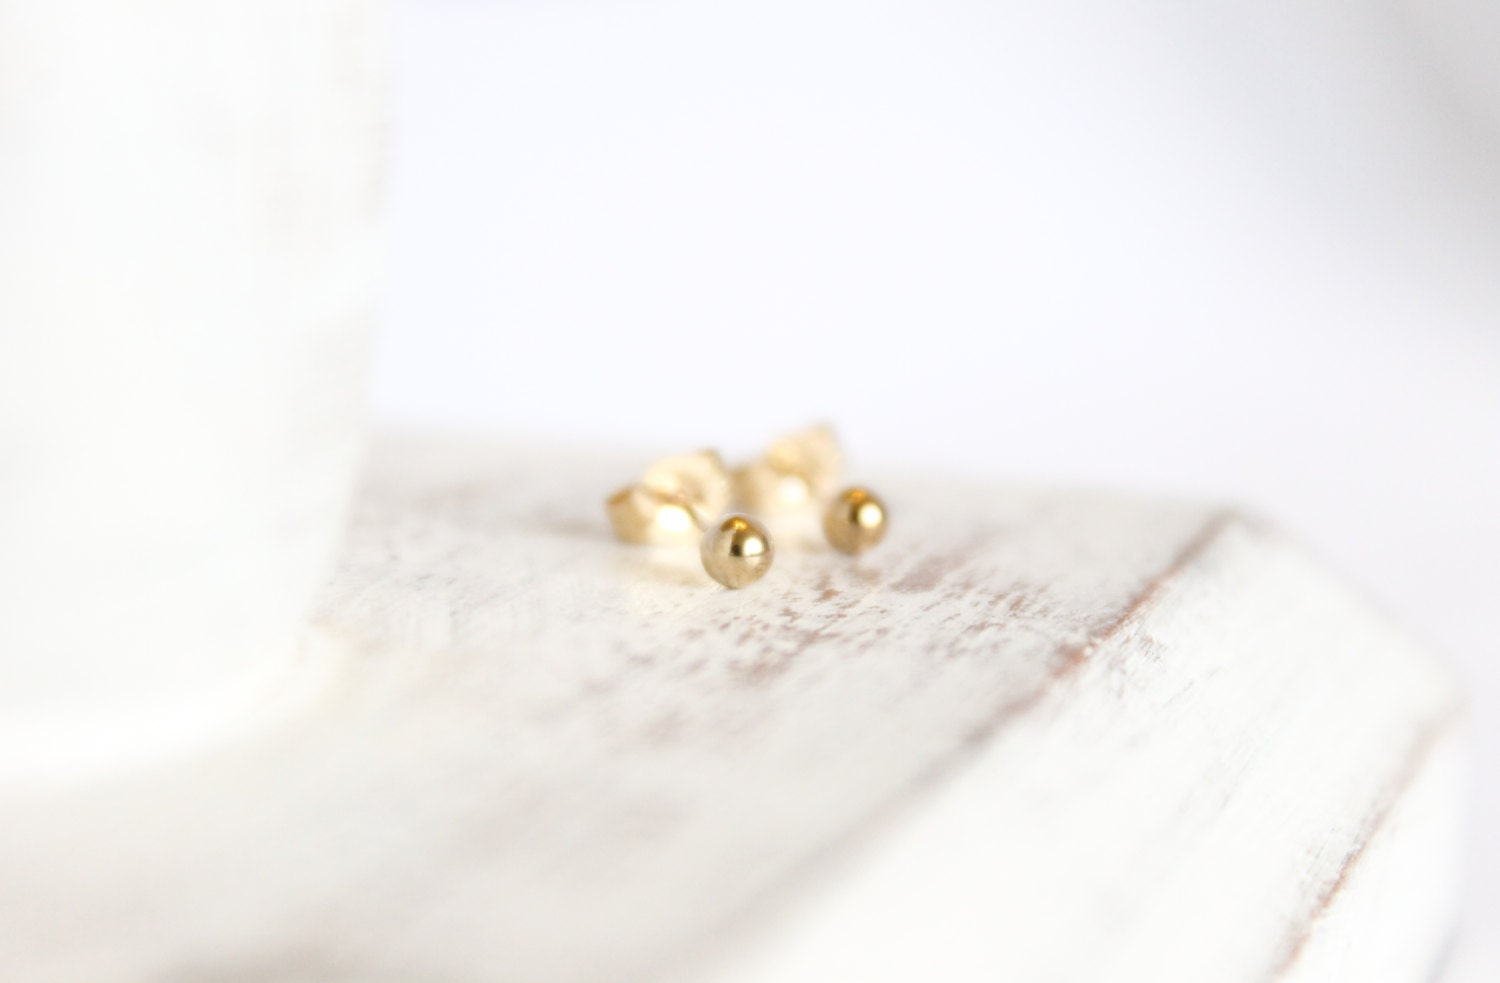 earrings edit products gold mkp eccentrics boutique simple lpsummer of